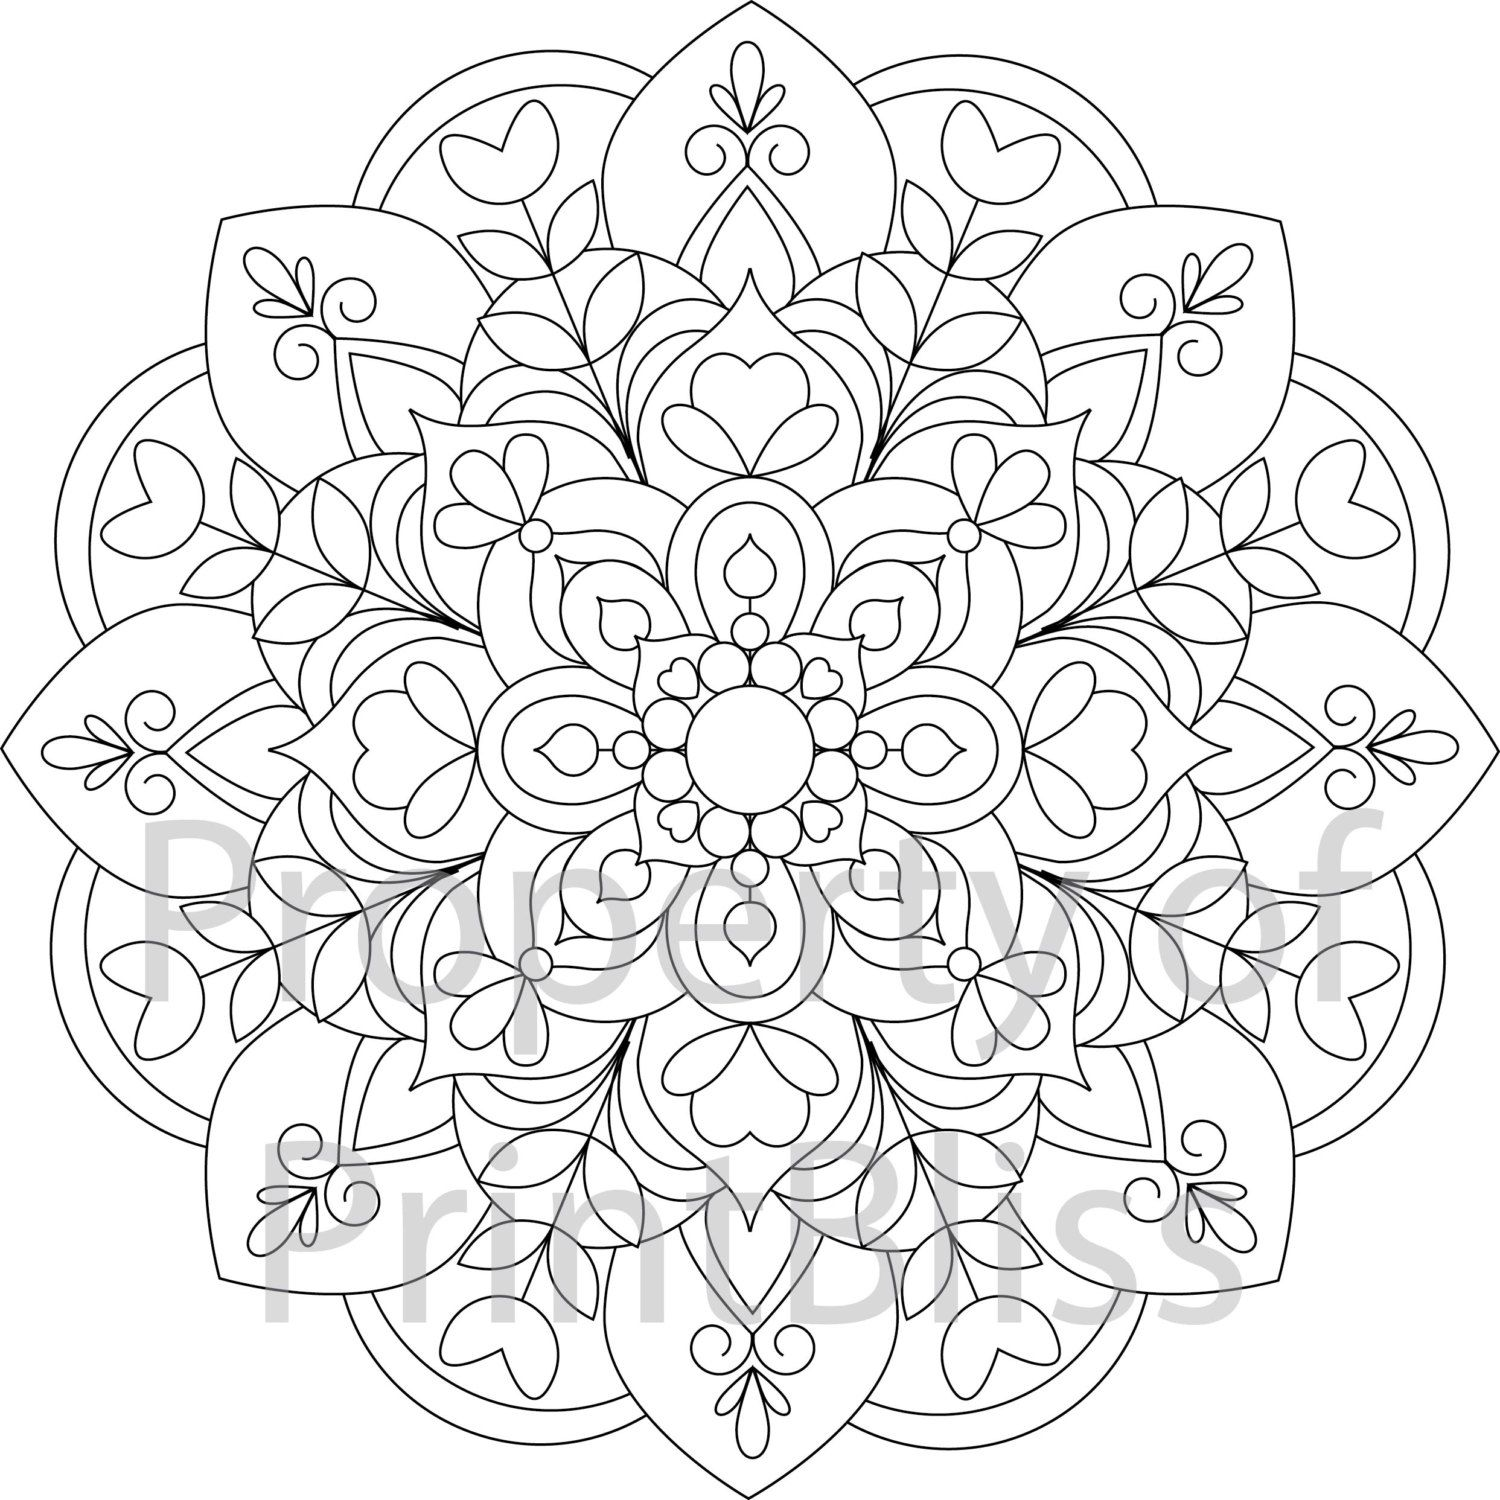 cool mandalas coloring pages | 19. Flower Mandala printable coloring page. by PrintBliss ...